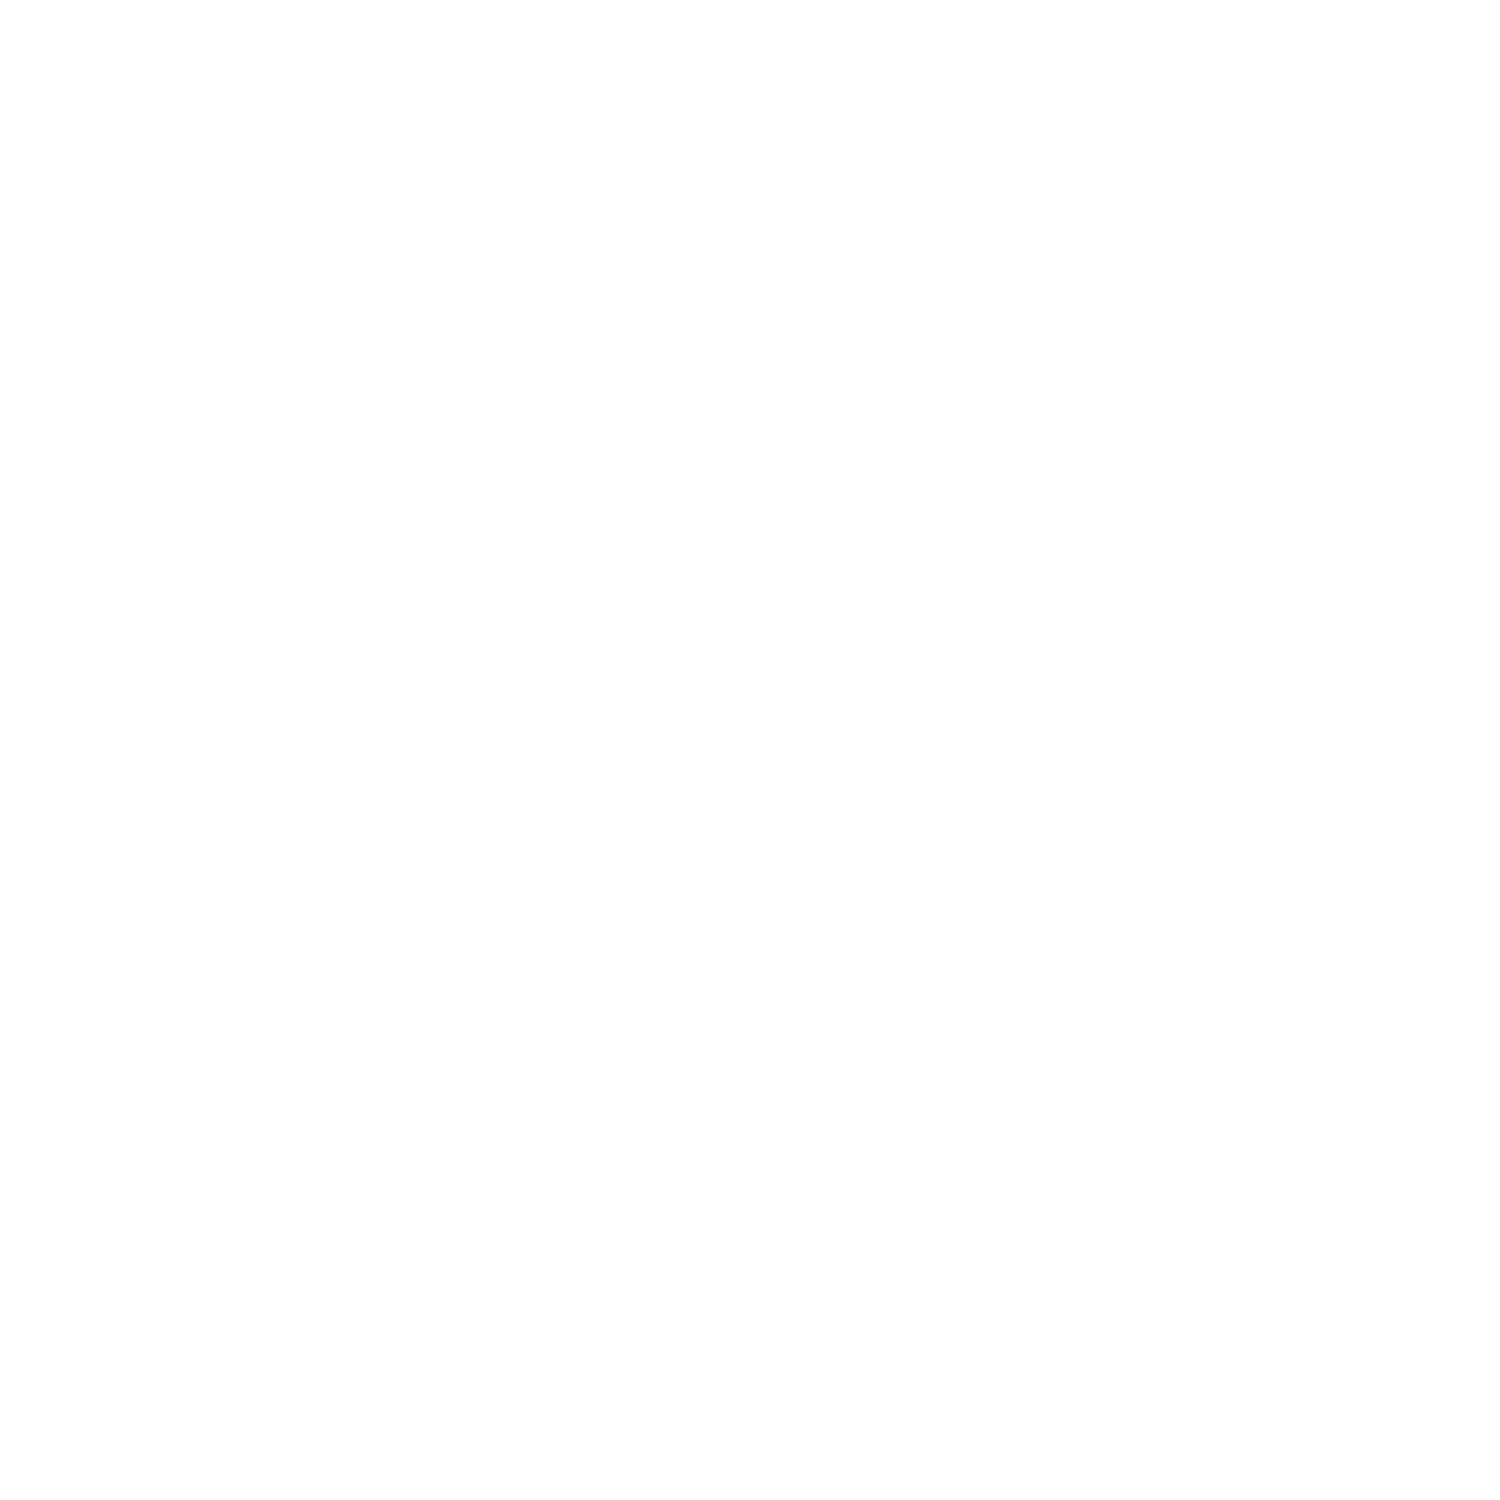 Rowe Station Woodworks